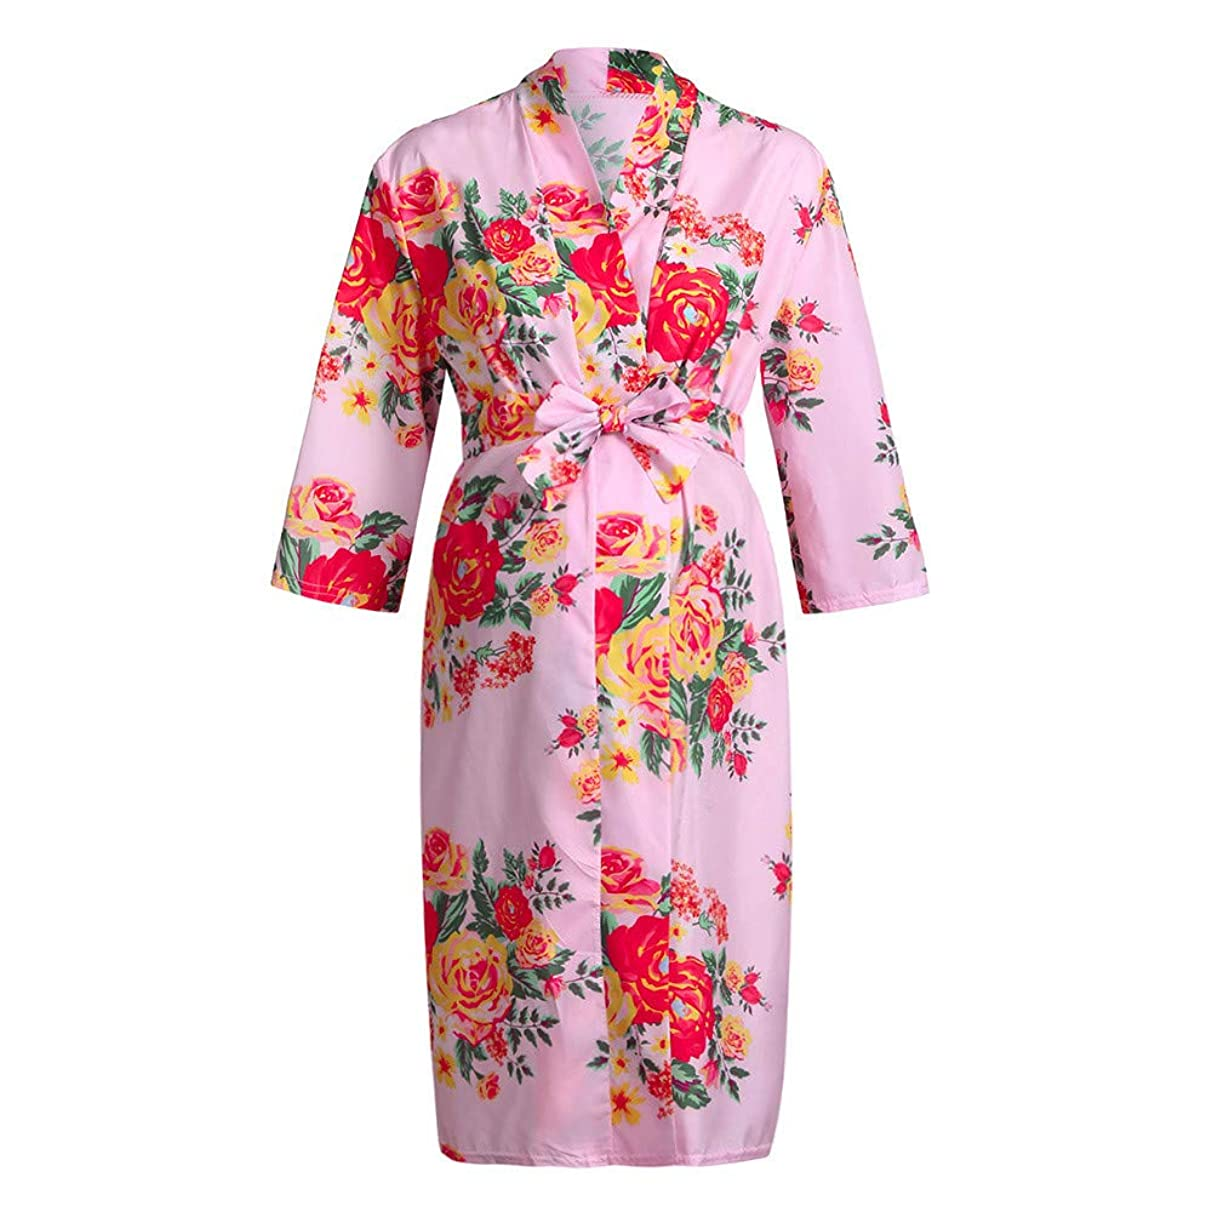 iLXHD Maternity Floral Lace Trim Delivery/Nursing Robe 3/4 Sleeve Nightgowns Hospital Breastfeeding Gown